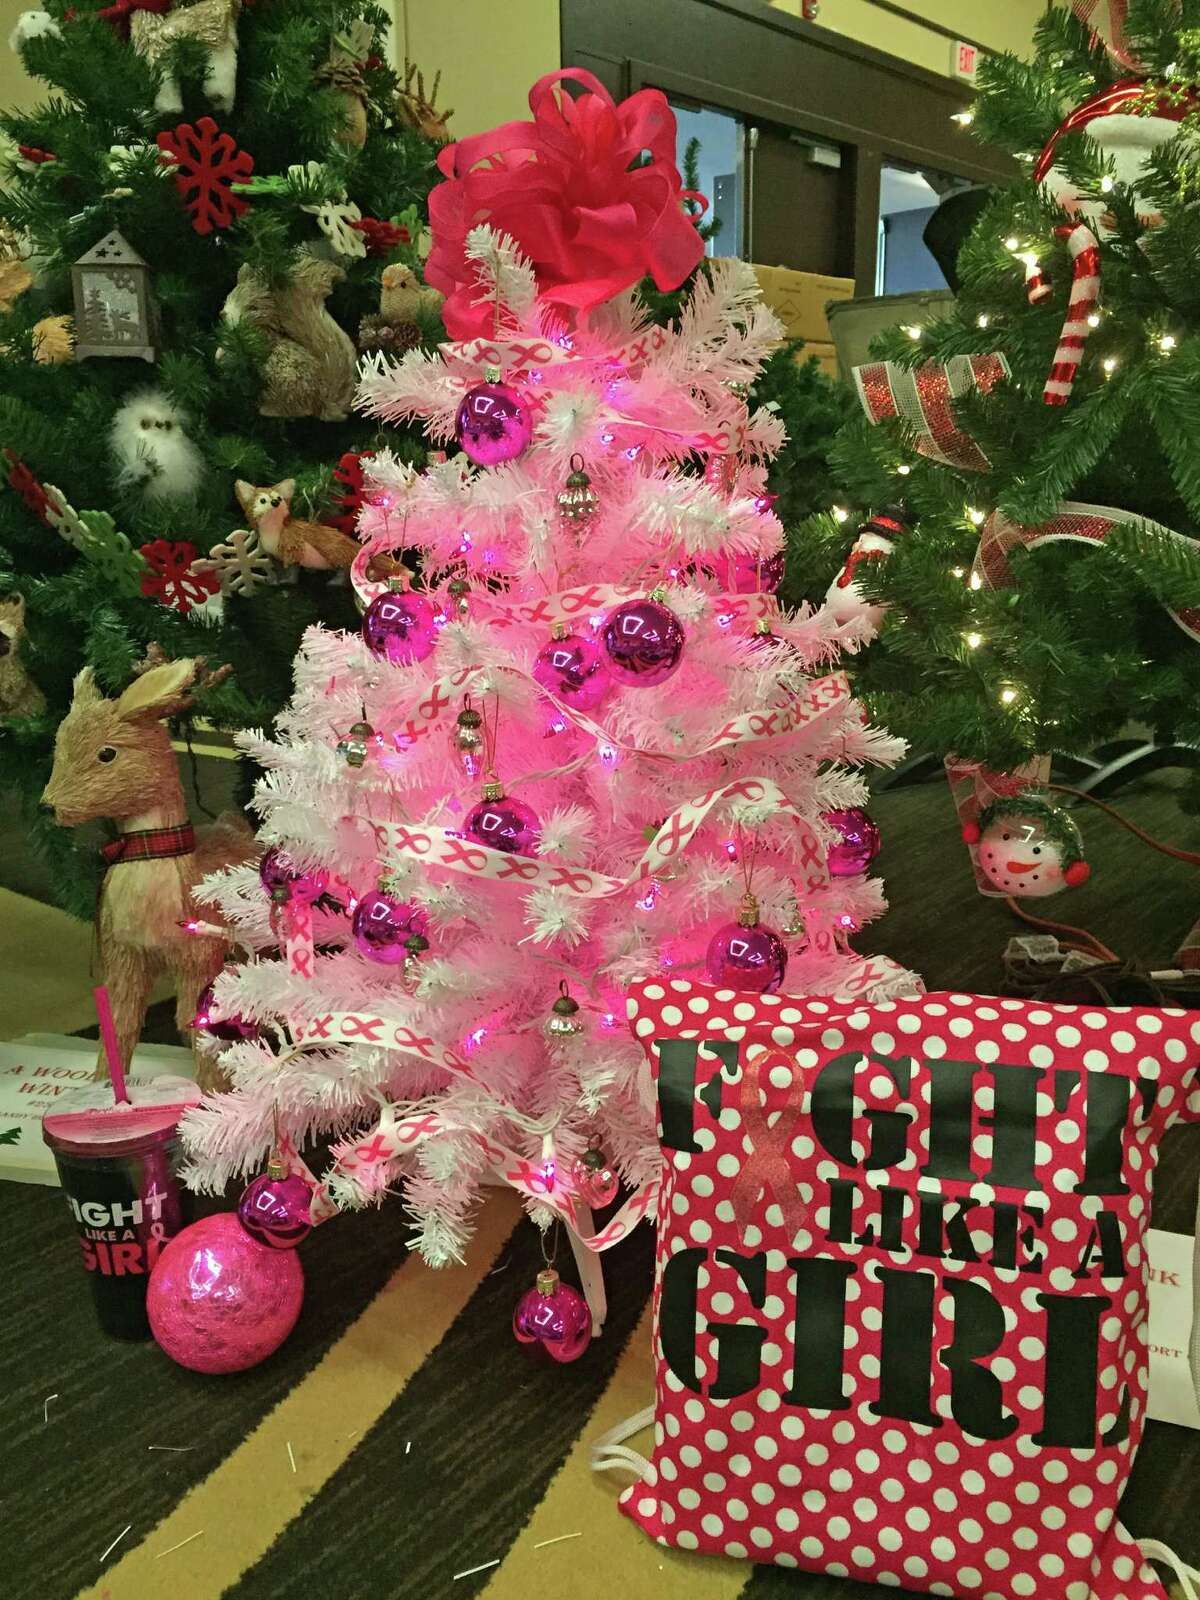 The Junior League of Greenwich's Enchanted Forest fundraiser on Friday, Saturday, and Sunday in Greenwich. Find out more.